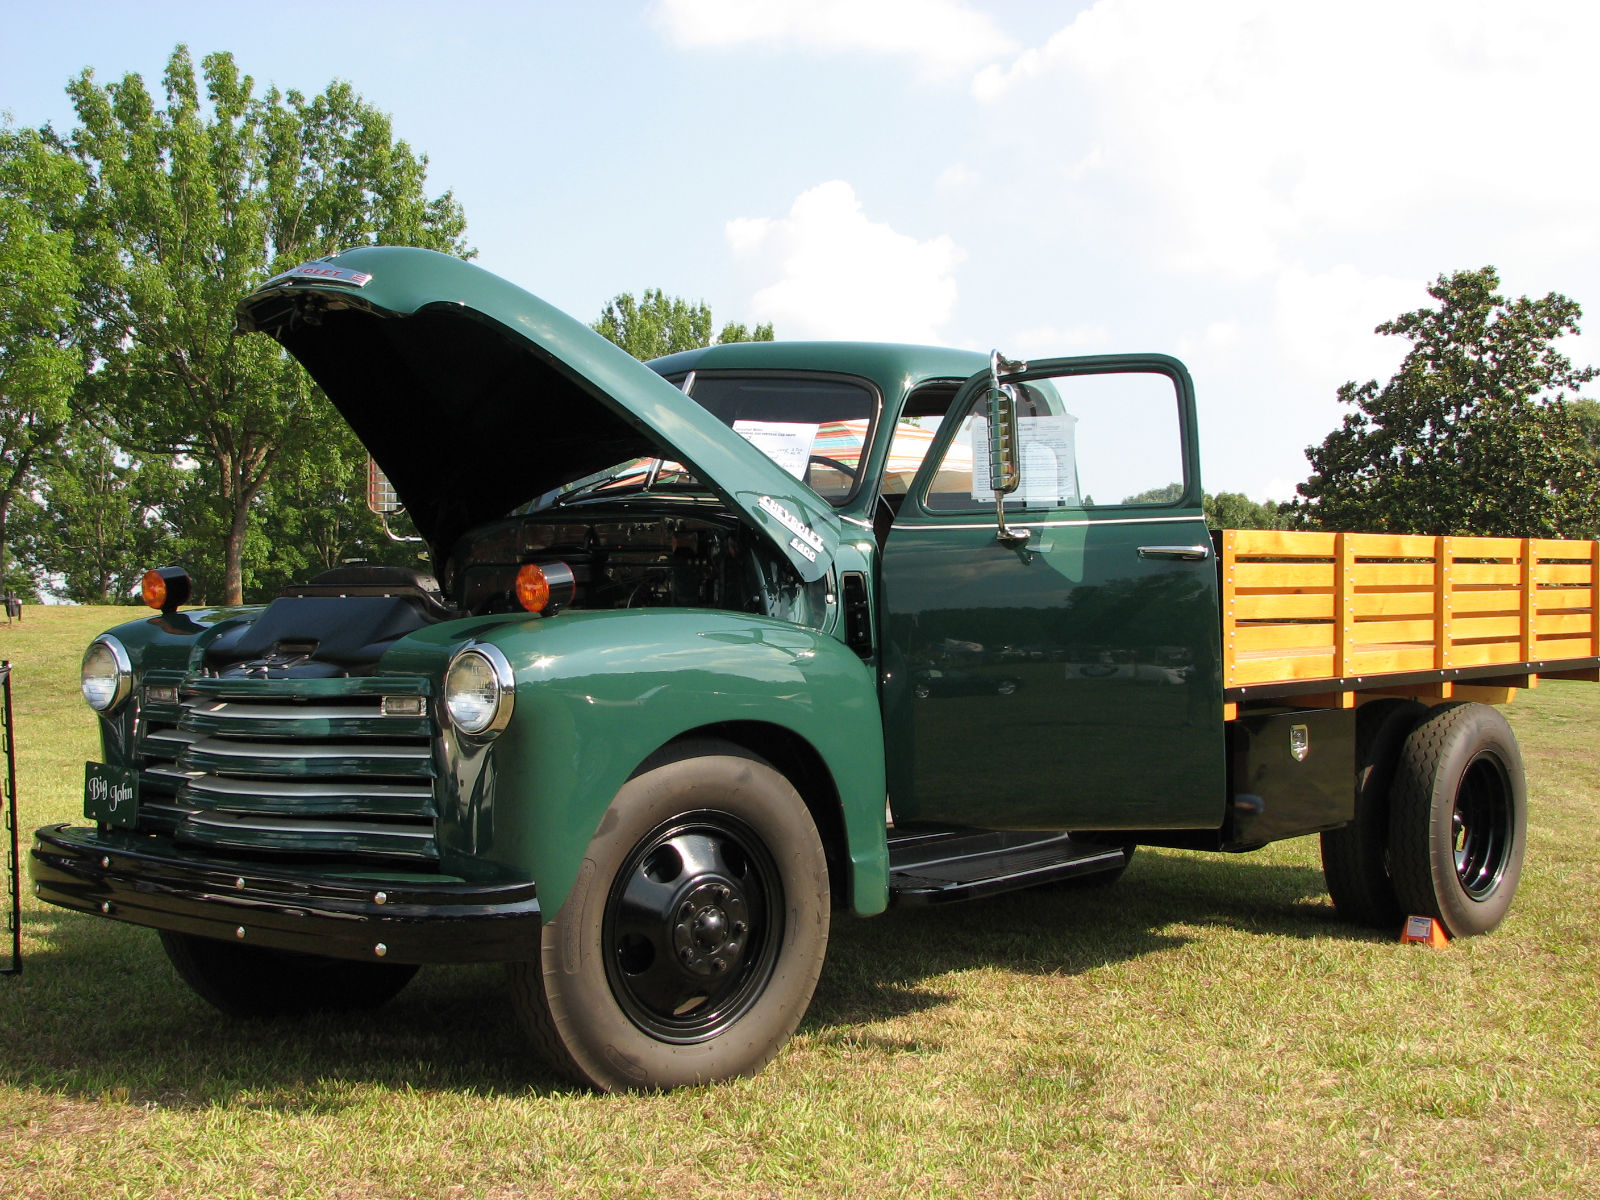 1950 Chevrolet 6400 http://theautolounge.net/lounge/index.php?topic ...